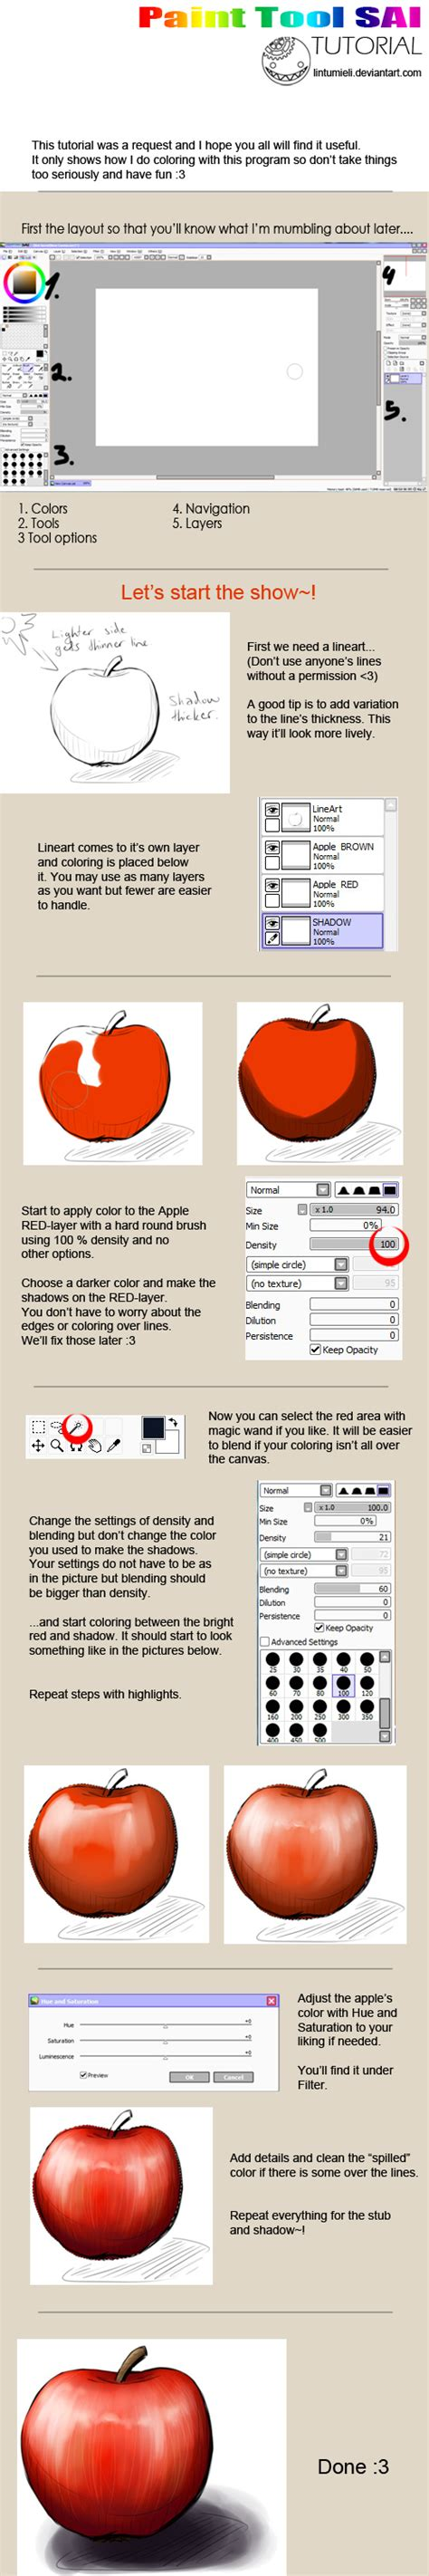 paint tool sai watercolor tutorial paint tool sai coloring tutorial by lintumieli on deviantart